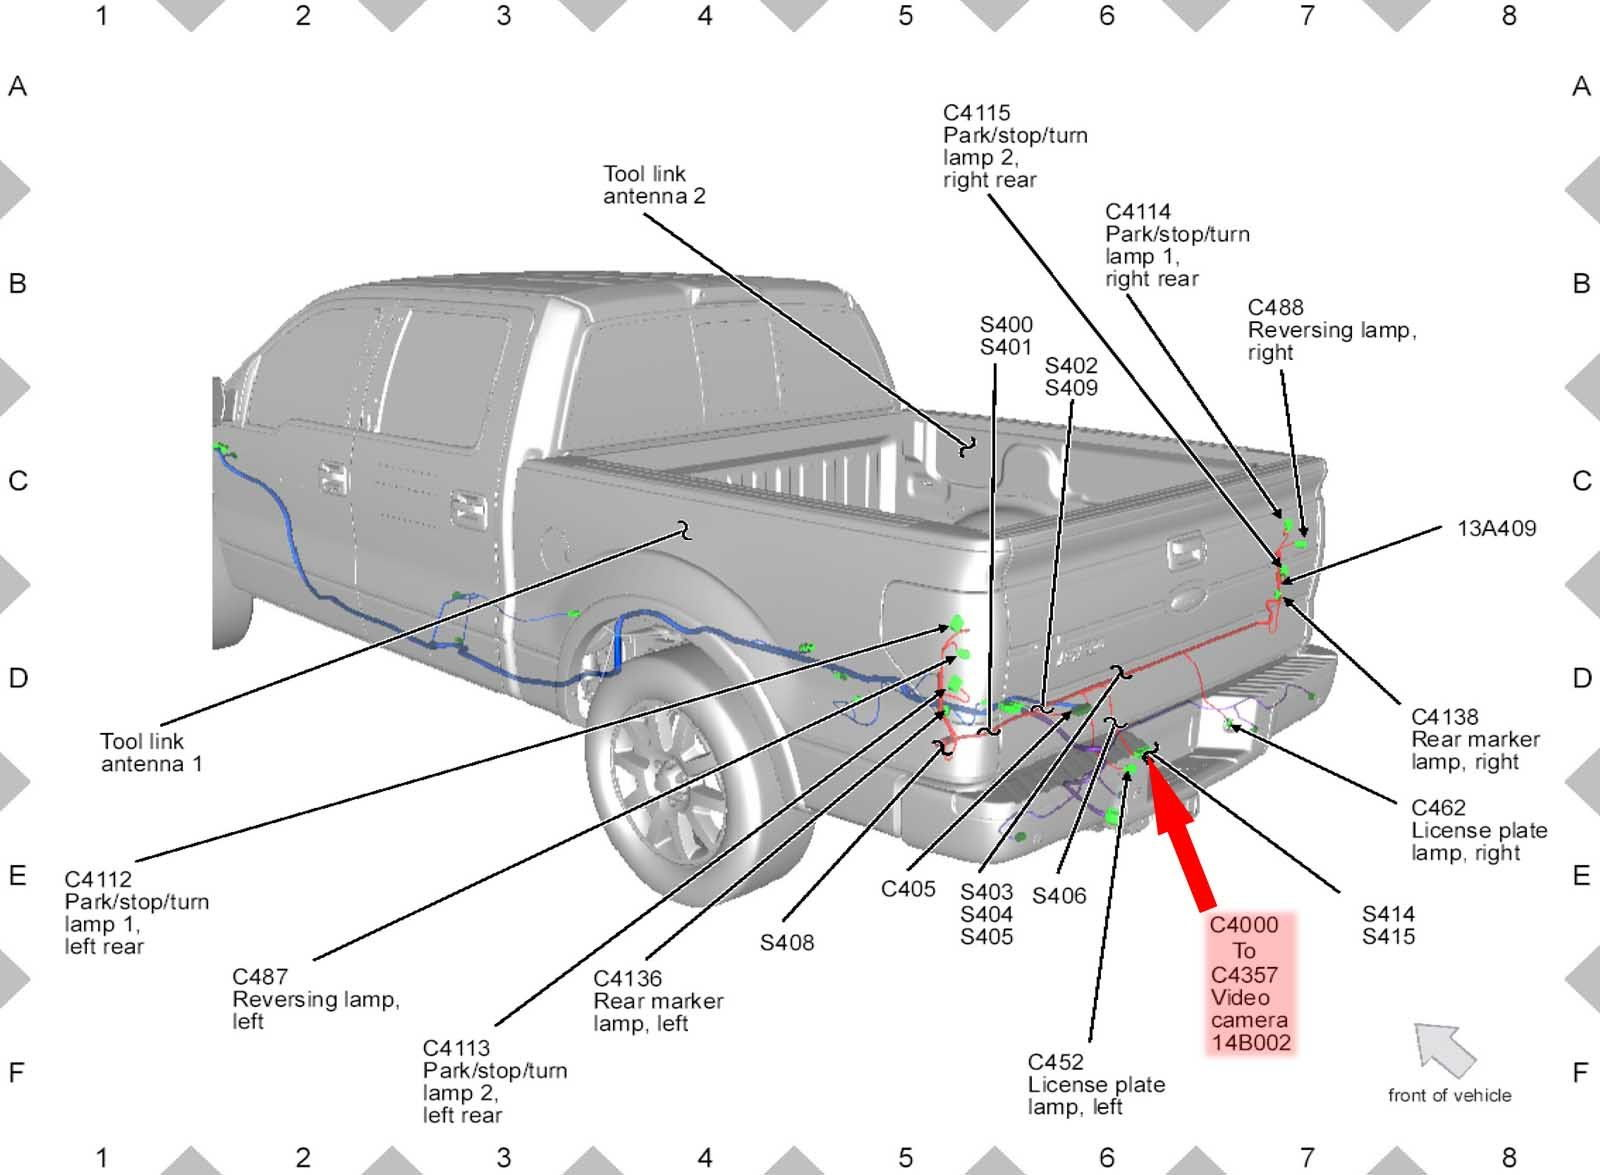 2002 ford f150 wiring harness diagram with Index2 on Ubbthreads besides 1992 Ford F 250 Wiring Diagram also Ac Clutch Coil Test besides 374908 How Adding Lights Interior Light Circuit moreover Kenwood Kdc Hd262u Wiring Harness To 1995 Ford.